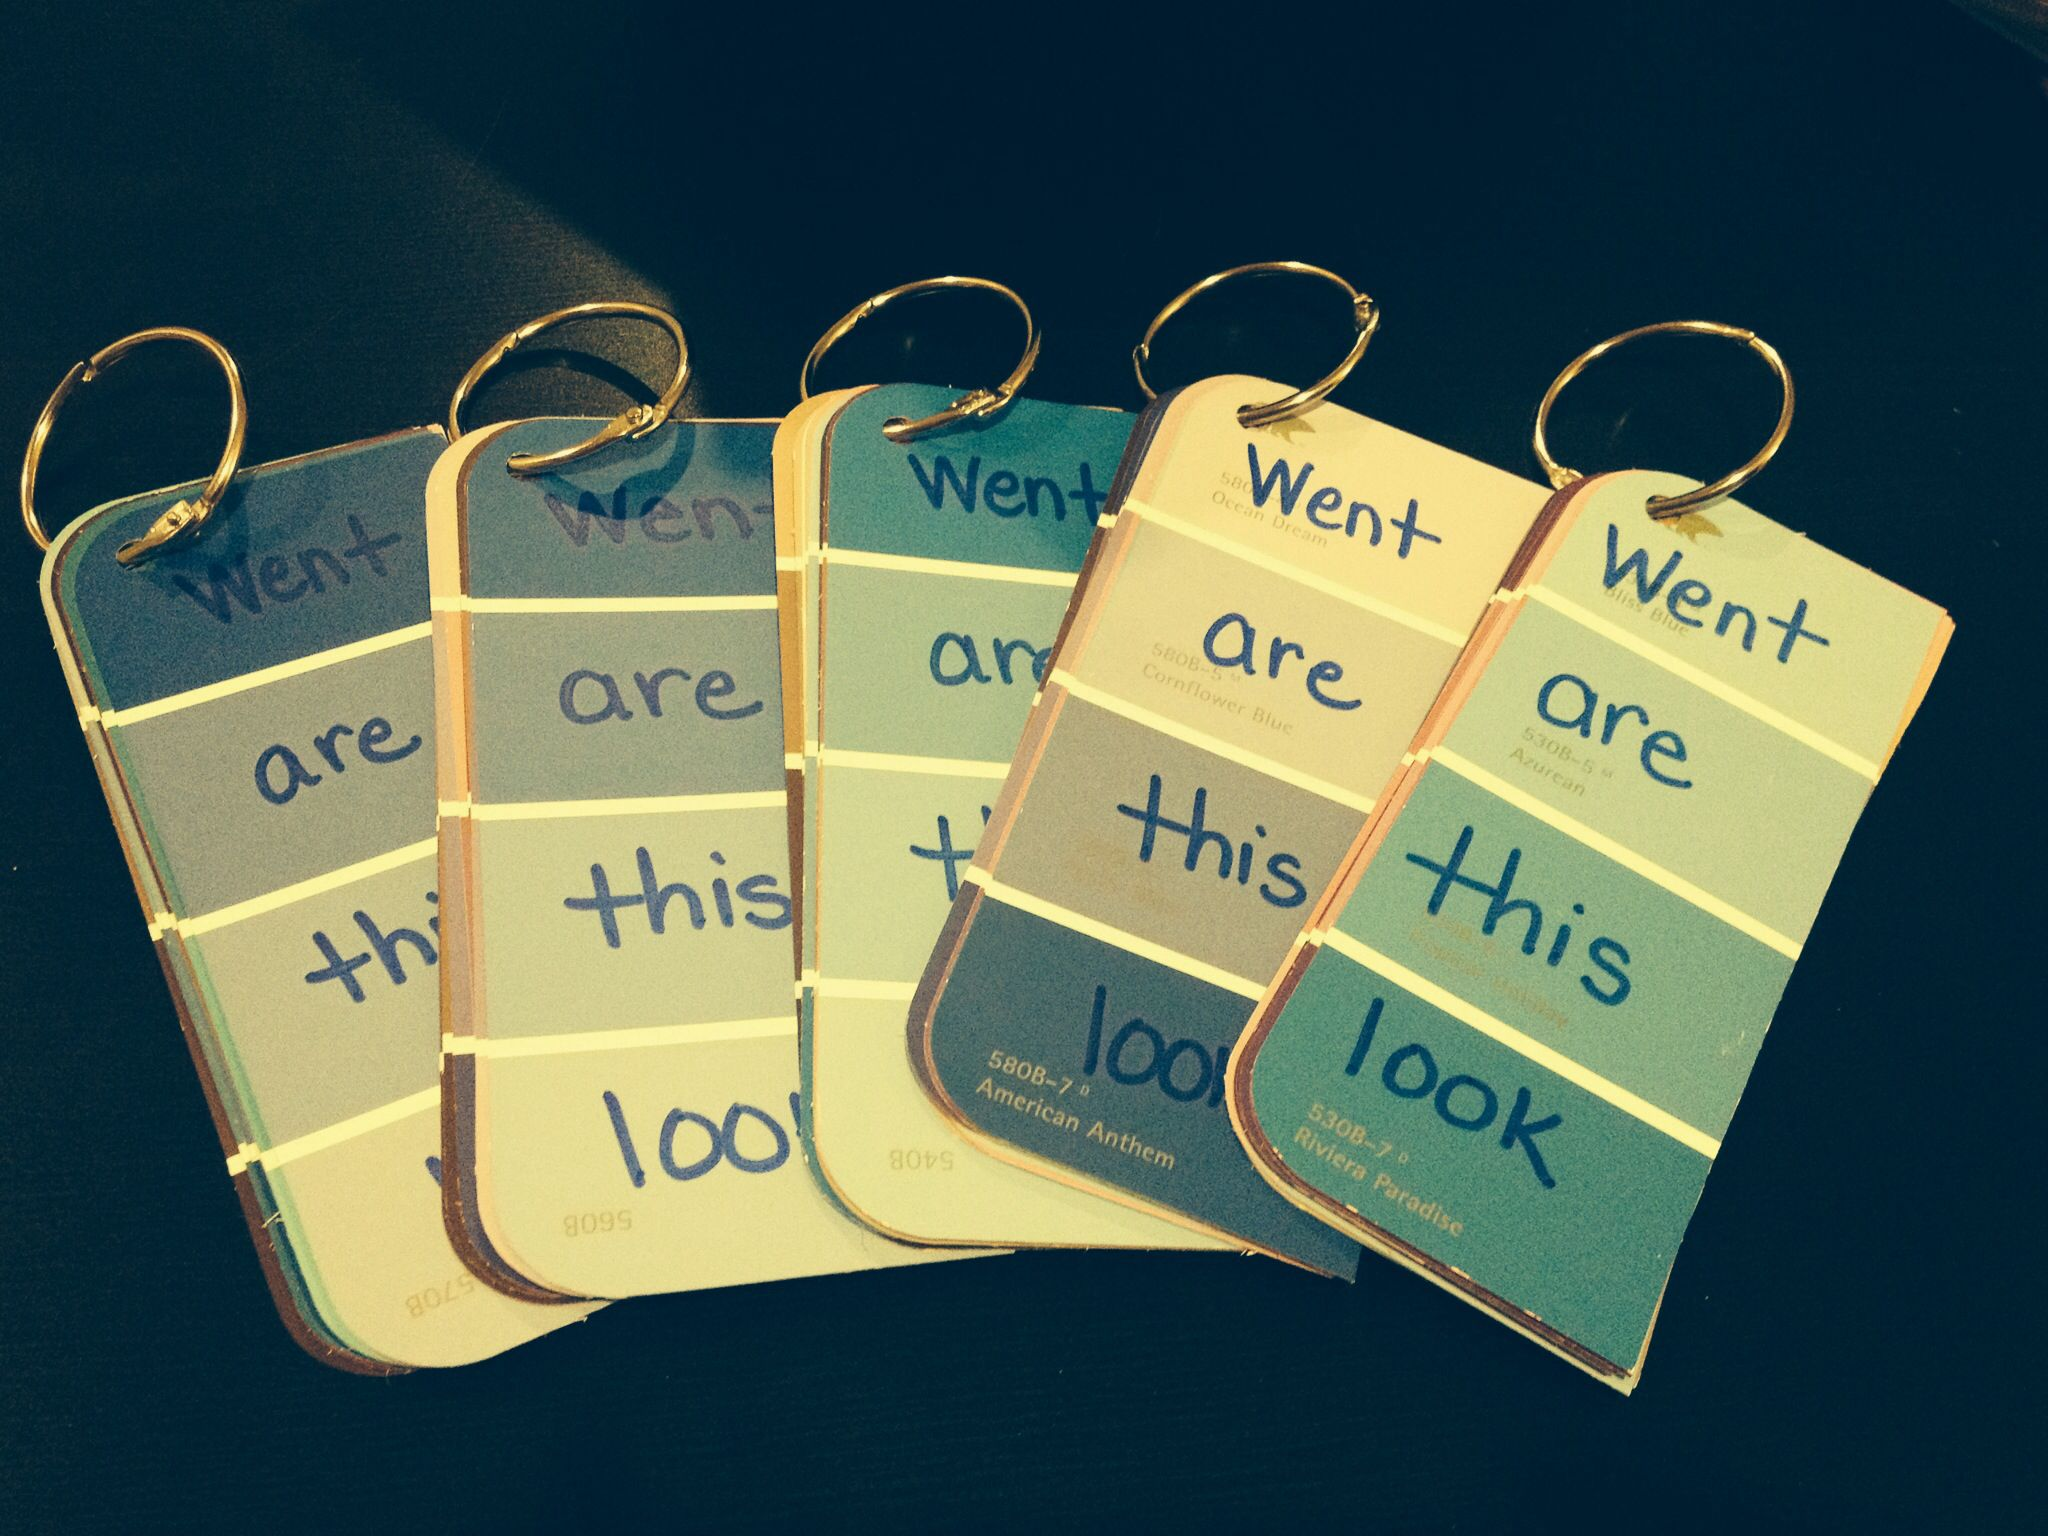 Kindergarten Sight Words On Paint Sample Cards  My Creations